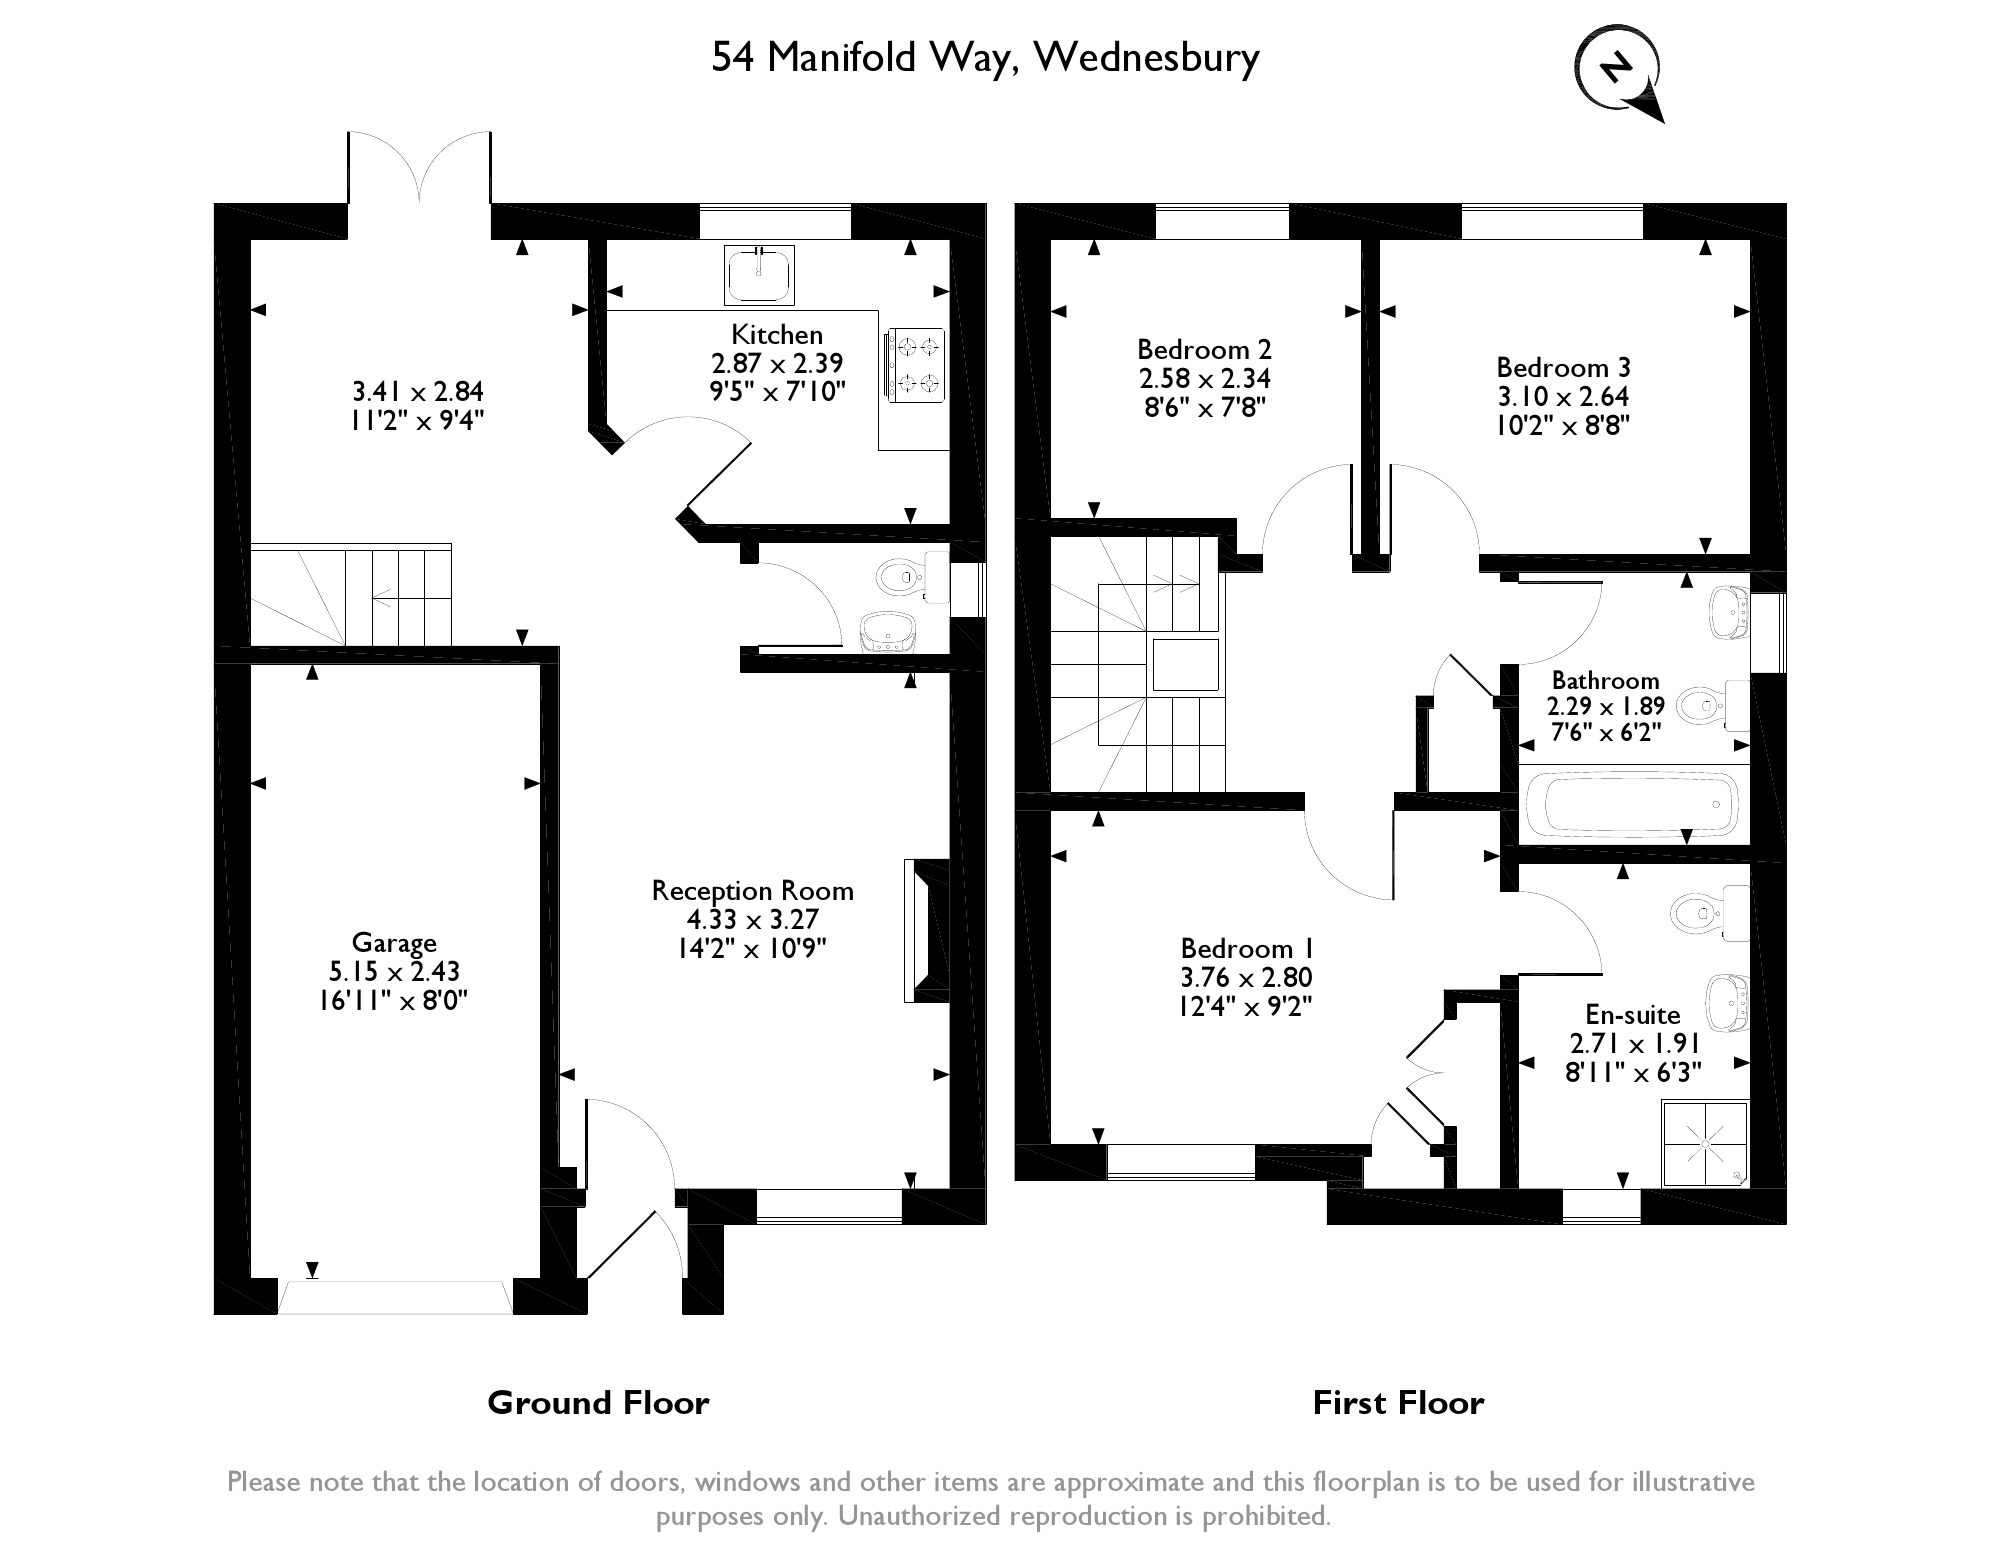 Manifold Way, Wednesbury, WS10 floor plan